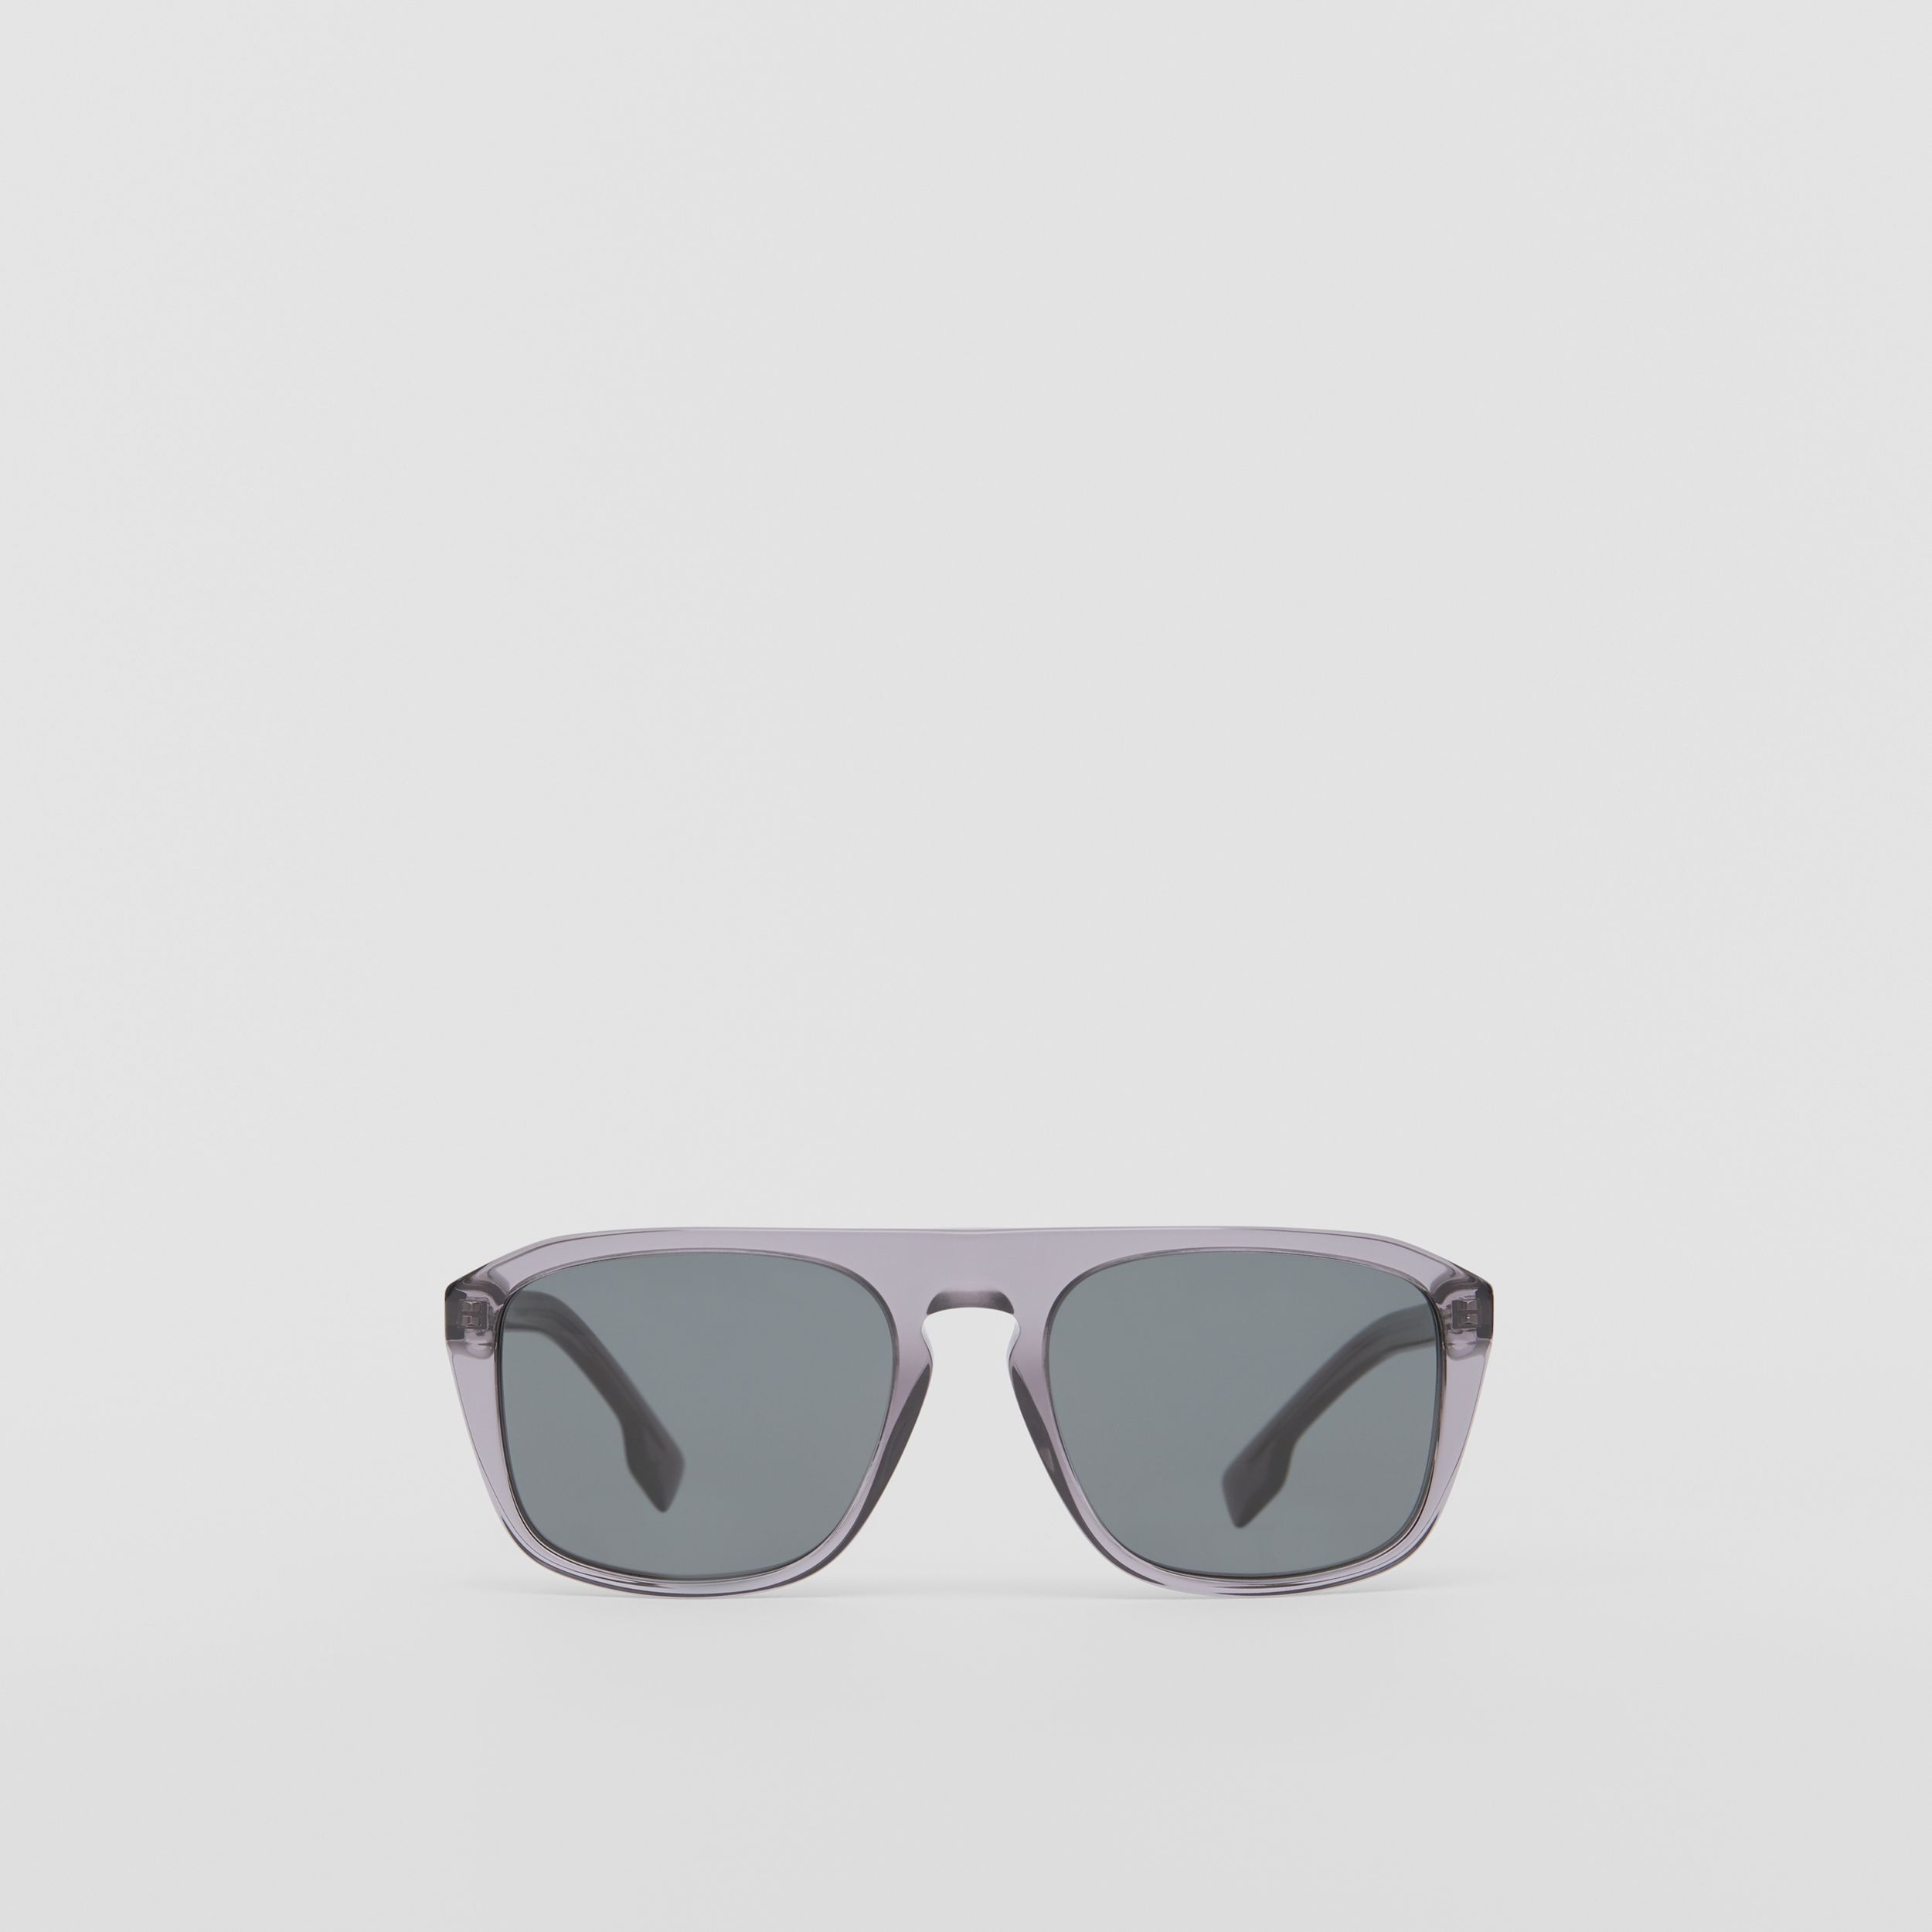 Navigator Sunglasses in Grey - Men | Burberry - 1